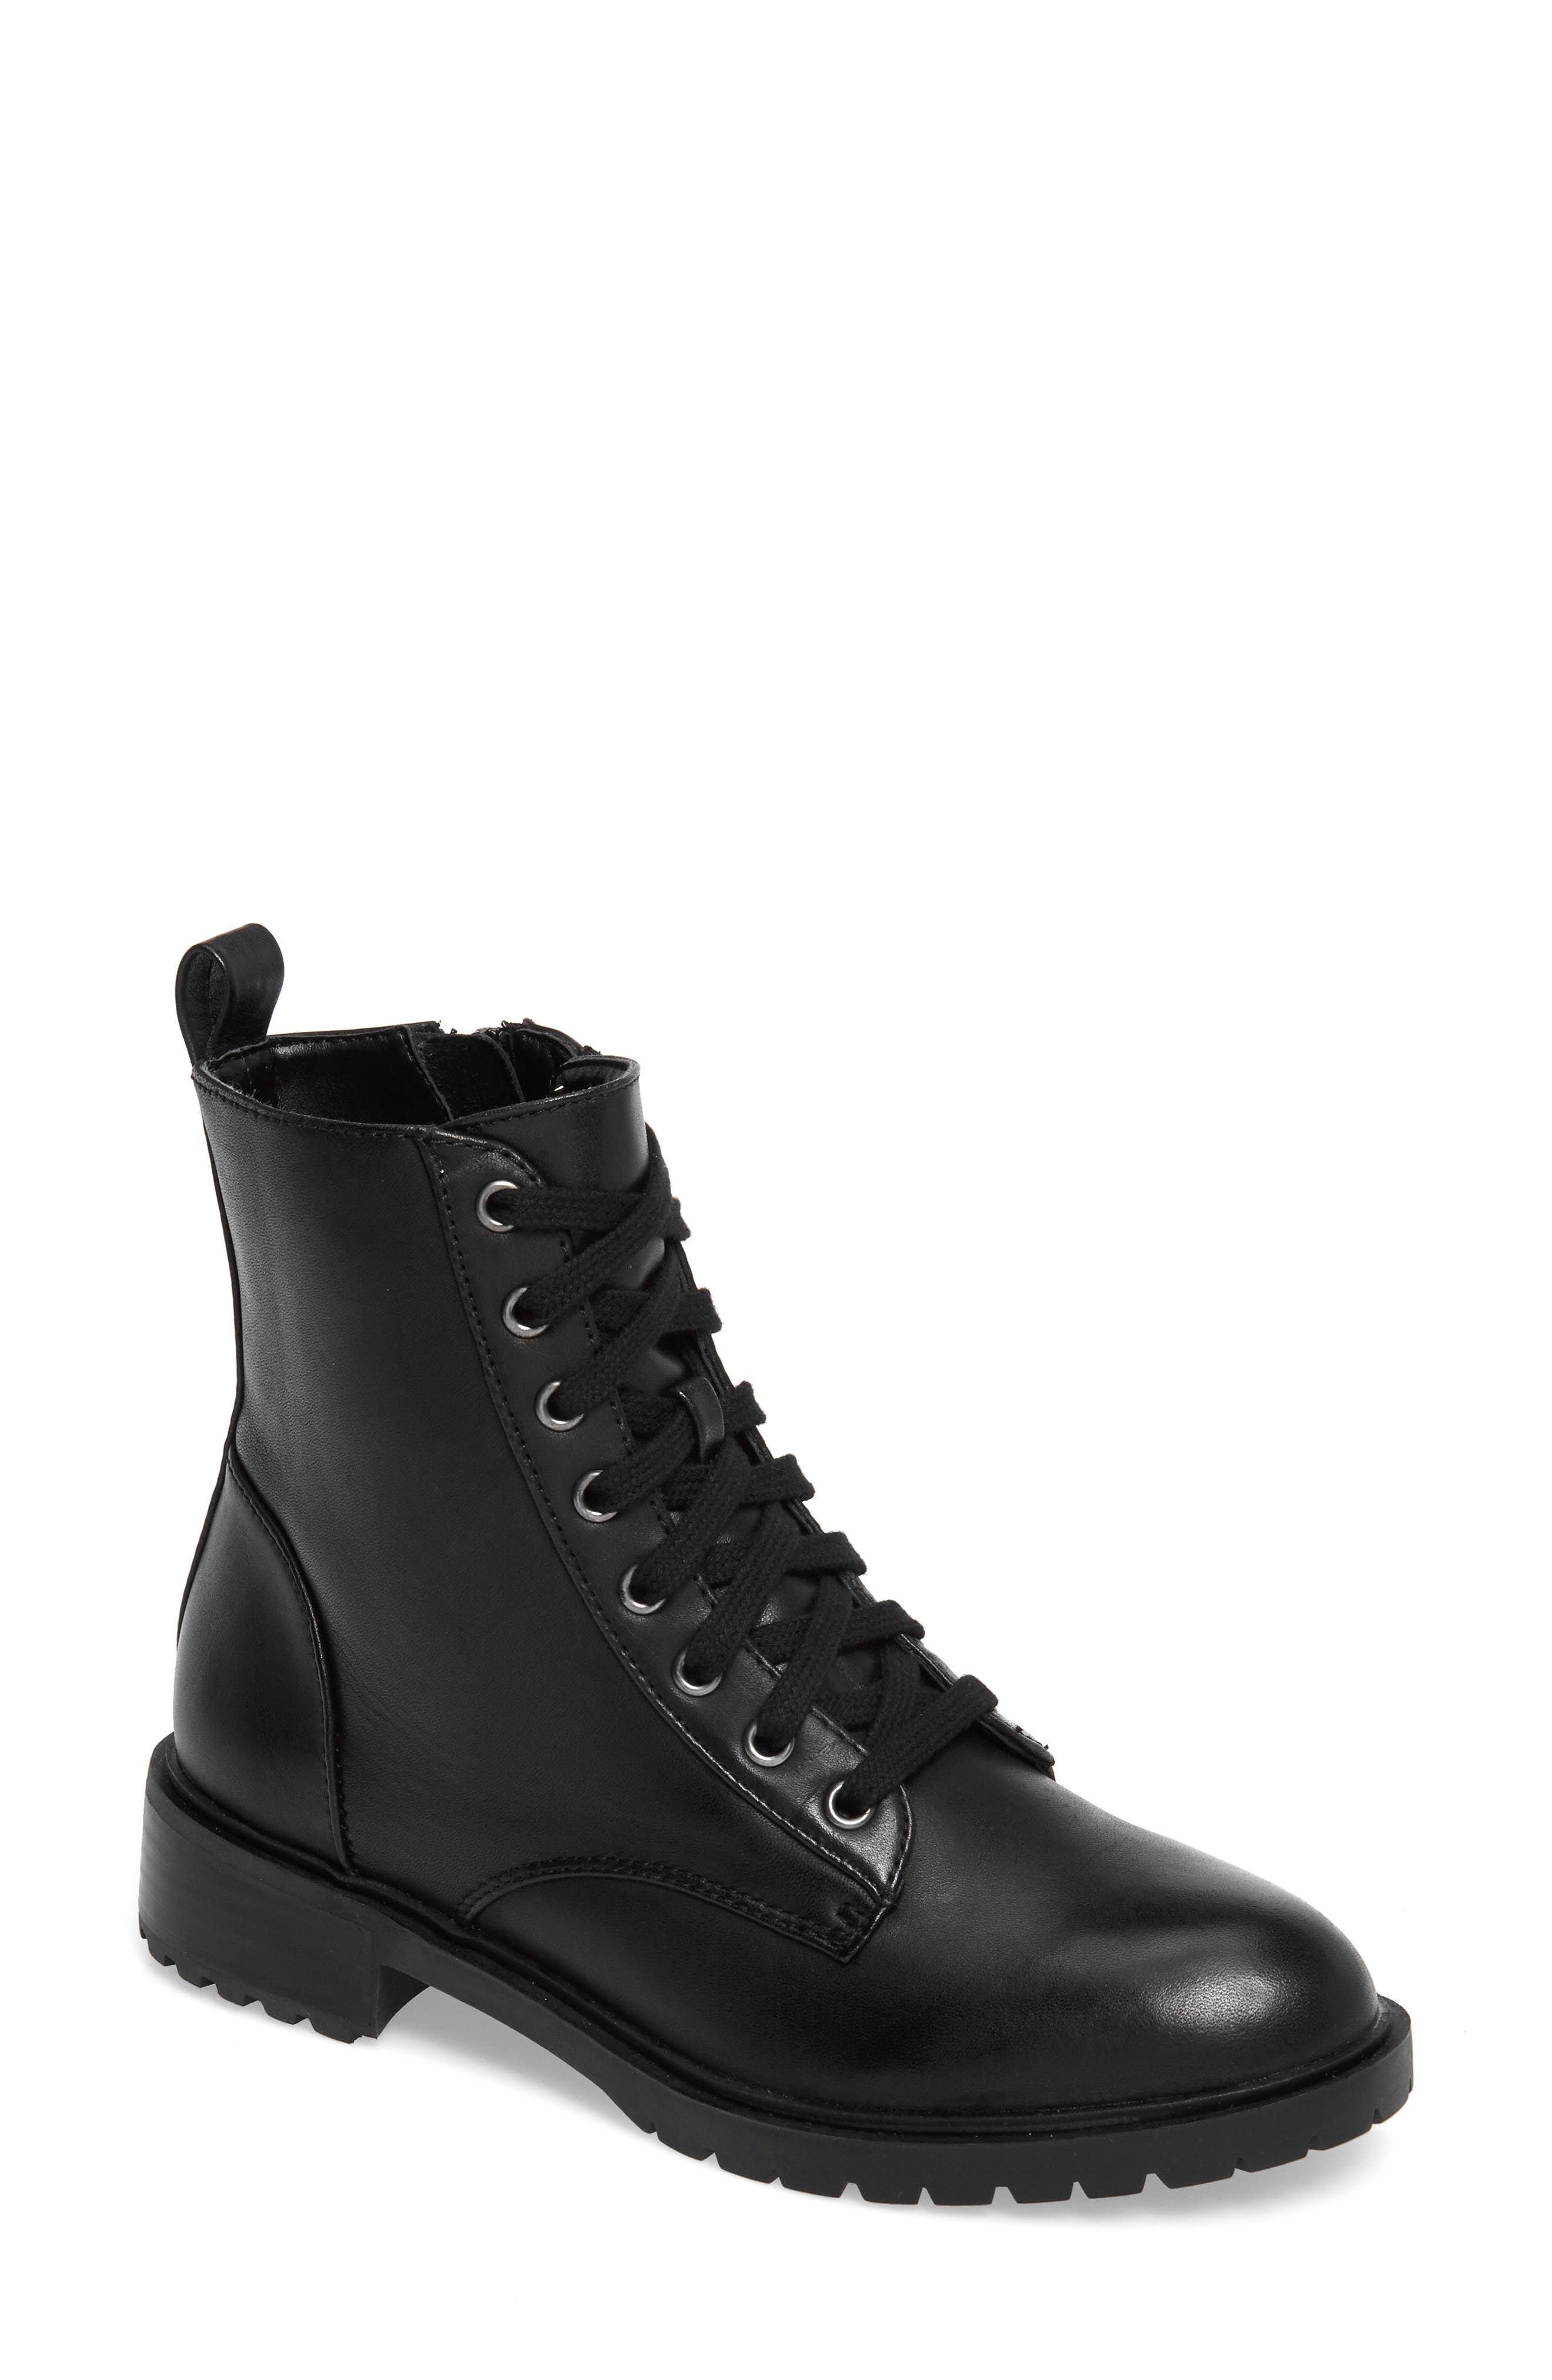 Officer Combat Boot,                             Main thumbnail 1, color,                             Black Leather